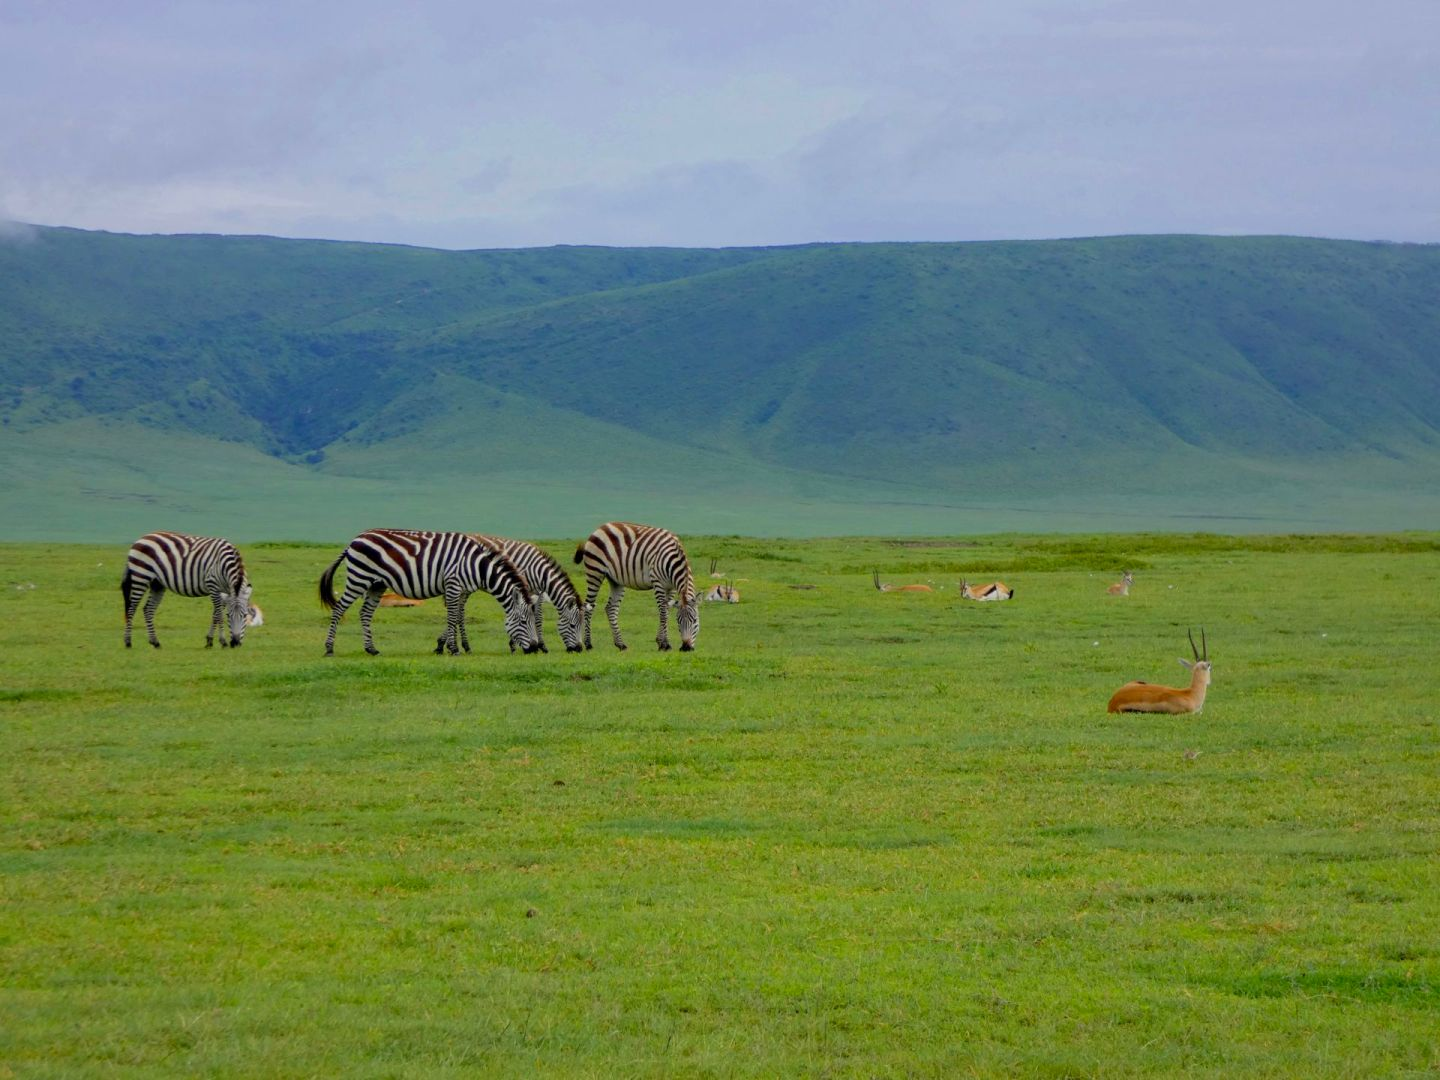 Zebras and gazelles in Ngorongoro Crater